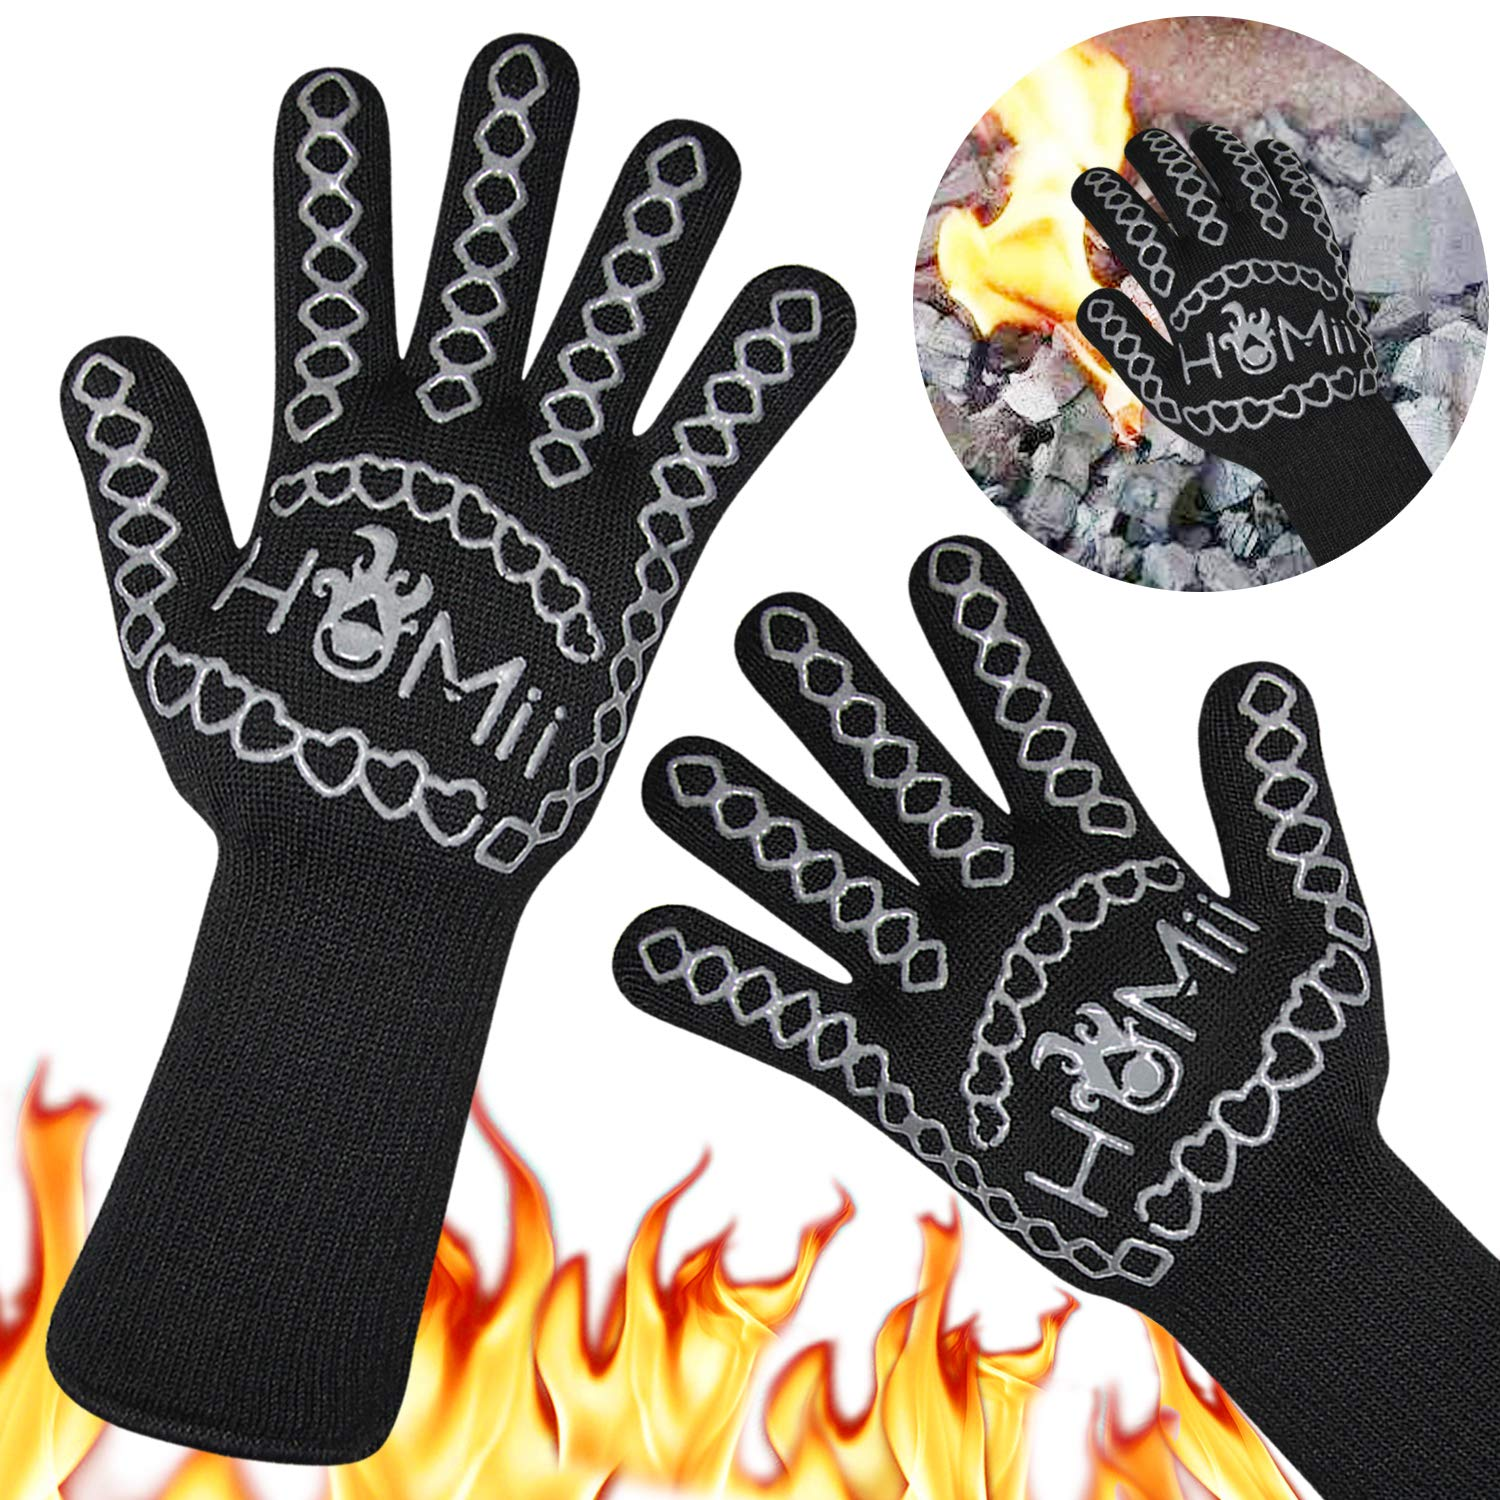 HoMii BBQ Gloves 1472℉ Extreme Heat Resistant, Oven Silicone Glove Kitchen Oven Mitts Grilling Glove for Cooking, Kitchen, Baking, Fireplace, Grilling, 1 Pair (13 Inch) (1-Black)